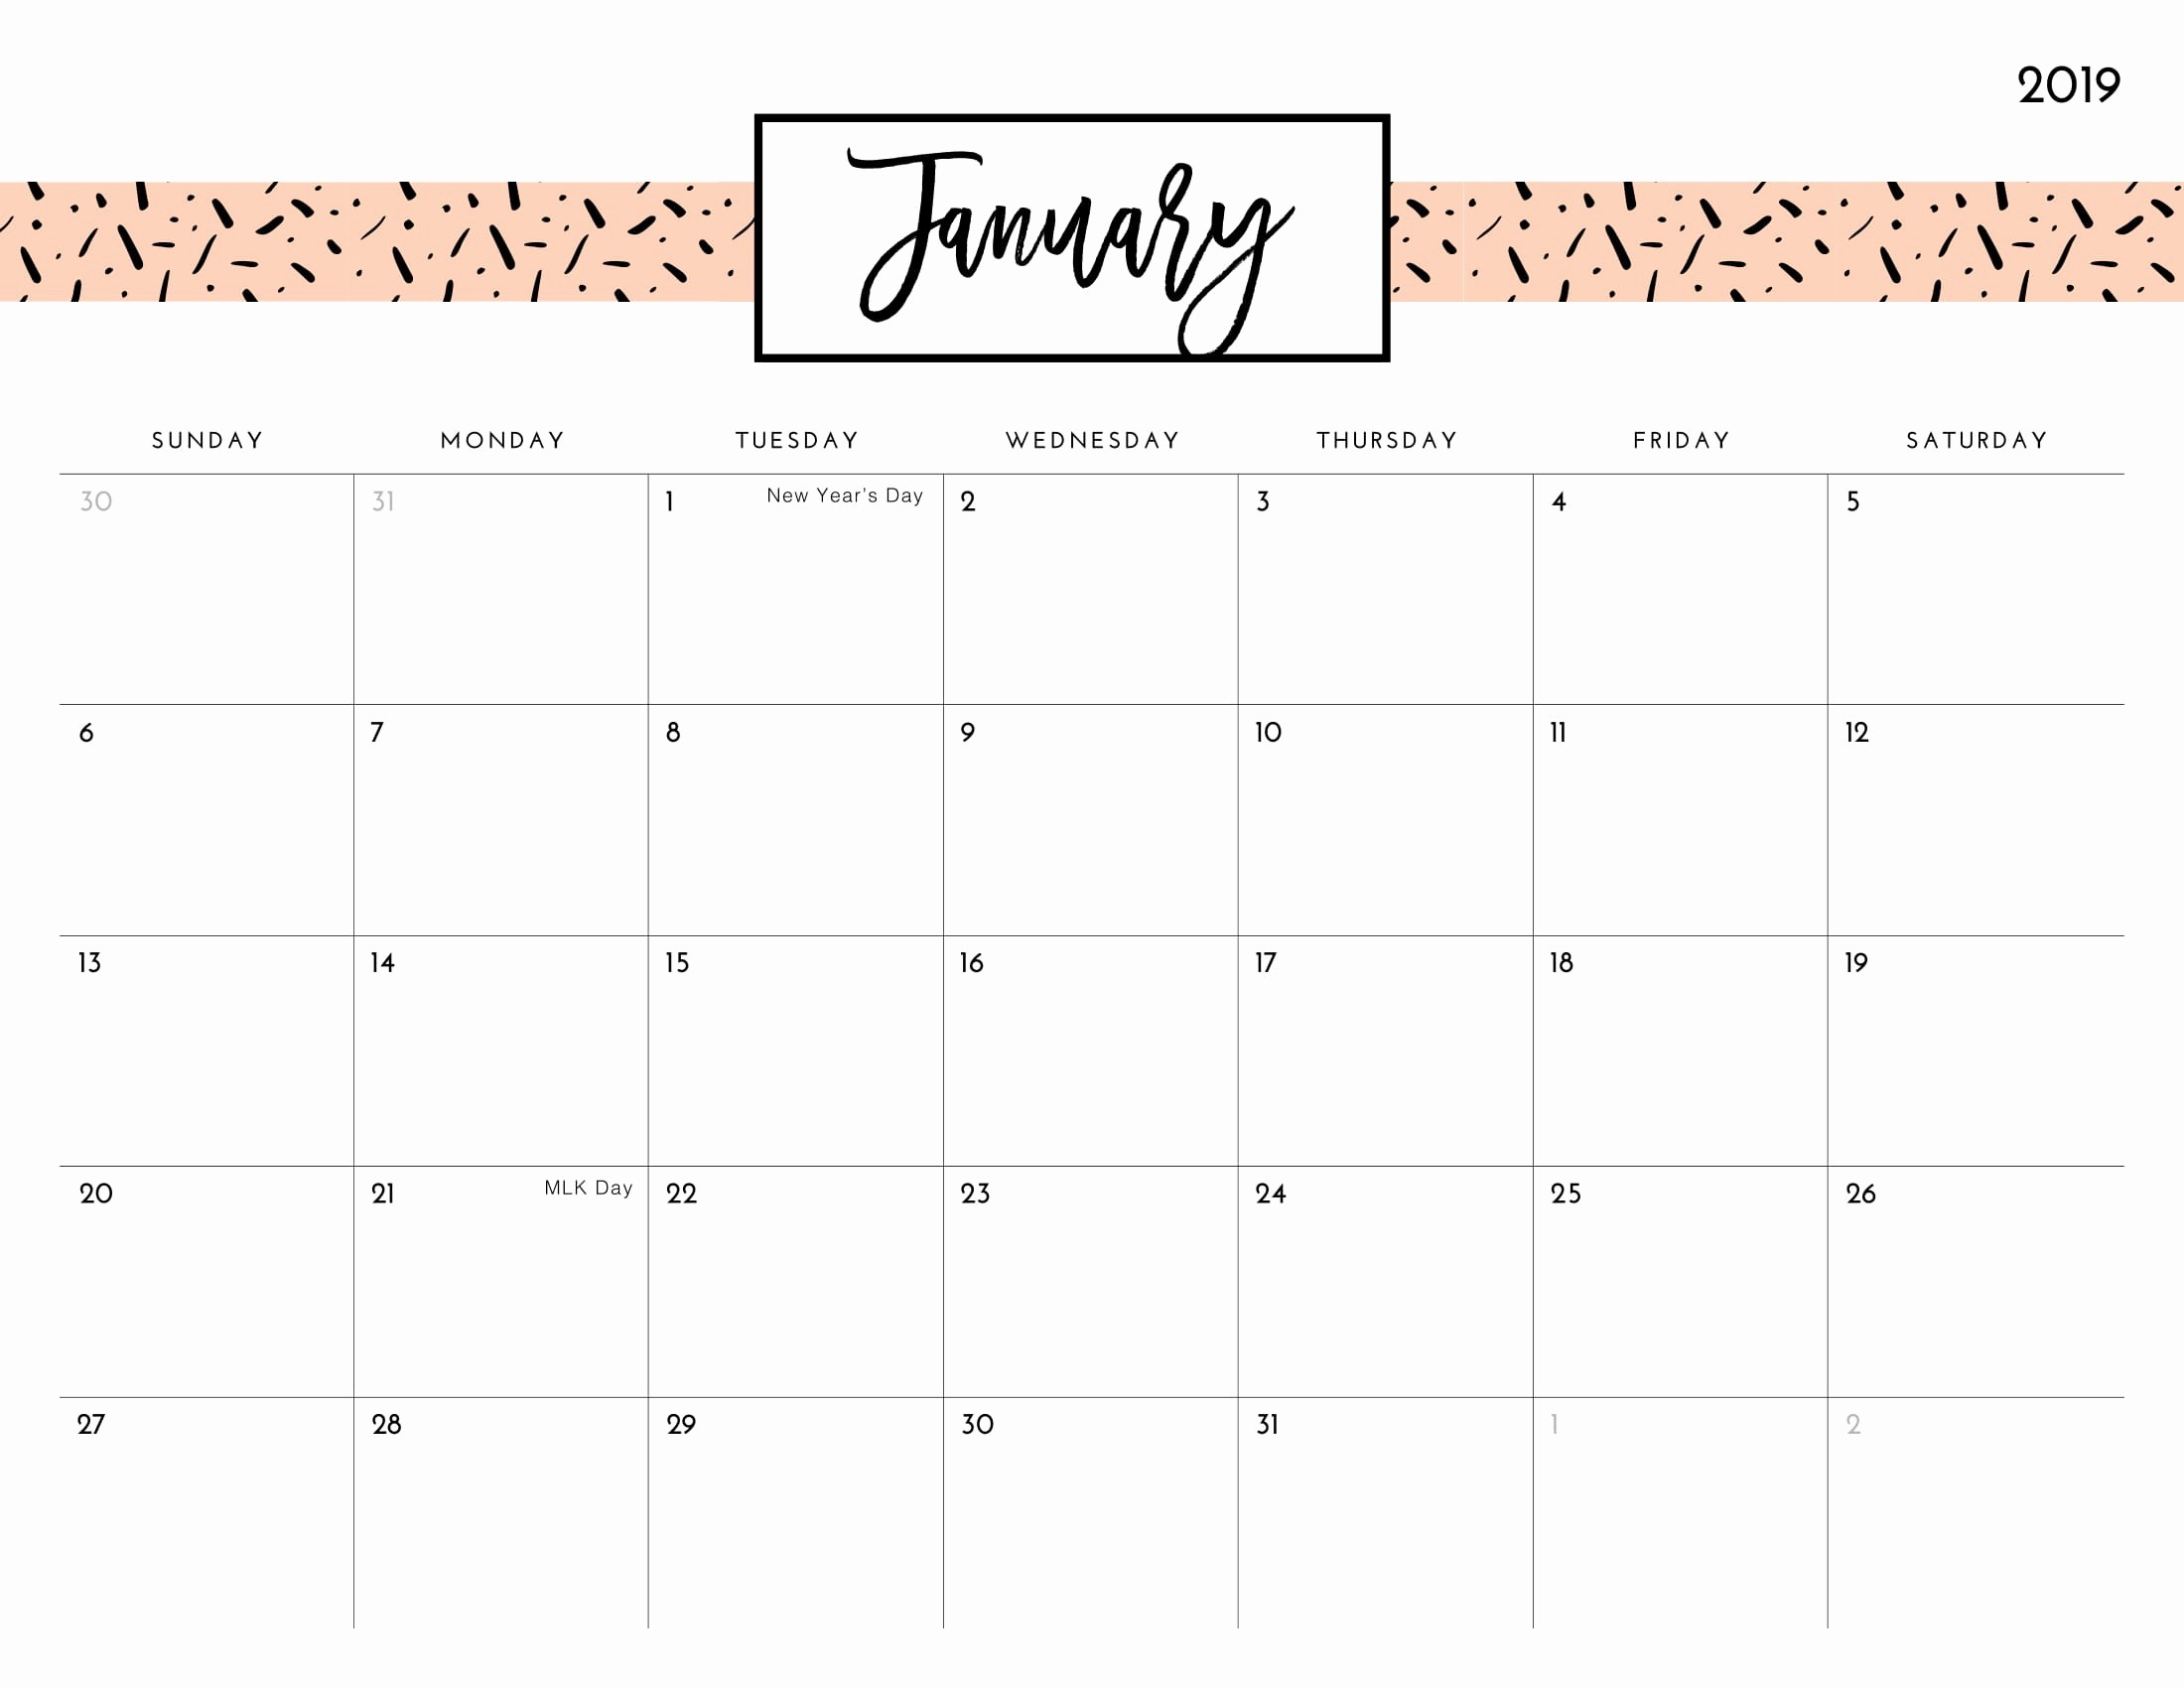 Google Sheets Calendar Template 2019 Luxury January 2019 Google Spreadsheet Calendar Editable Template